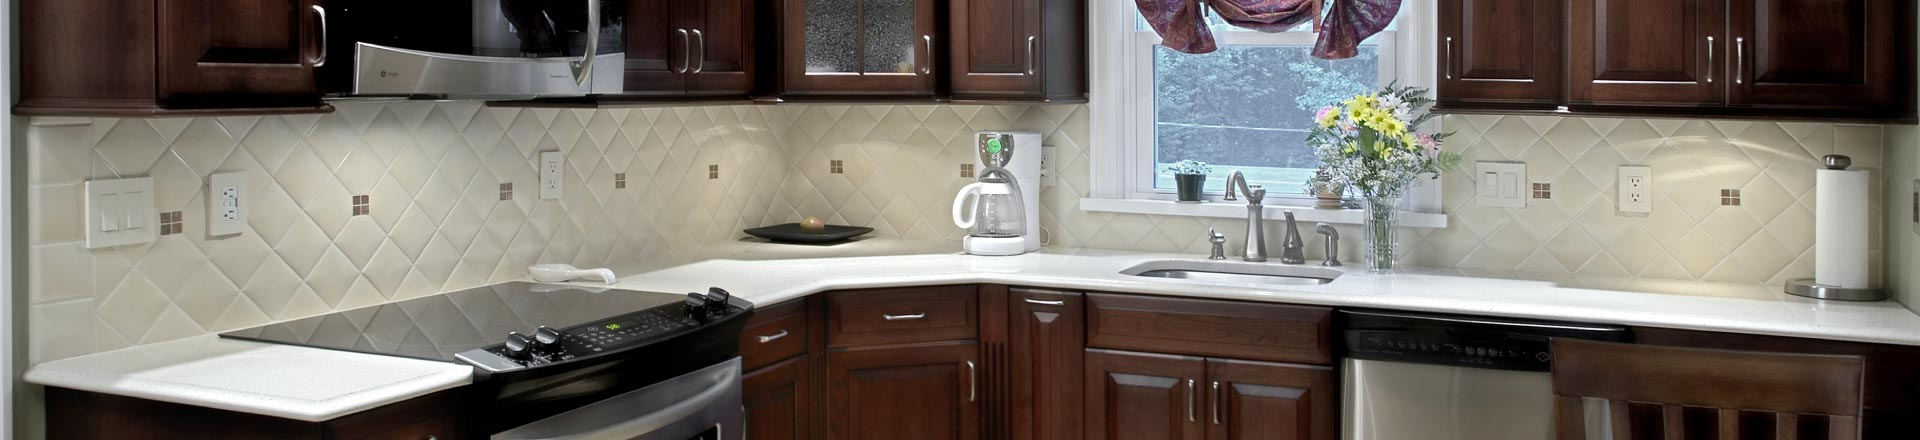 white-routed-backsplash-slider.jpg